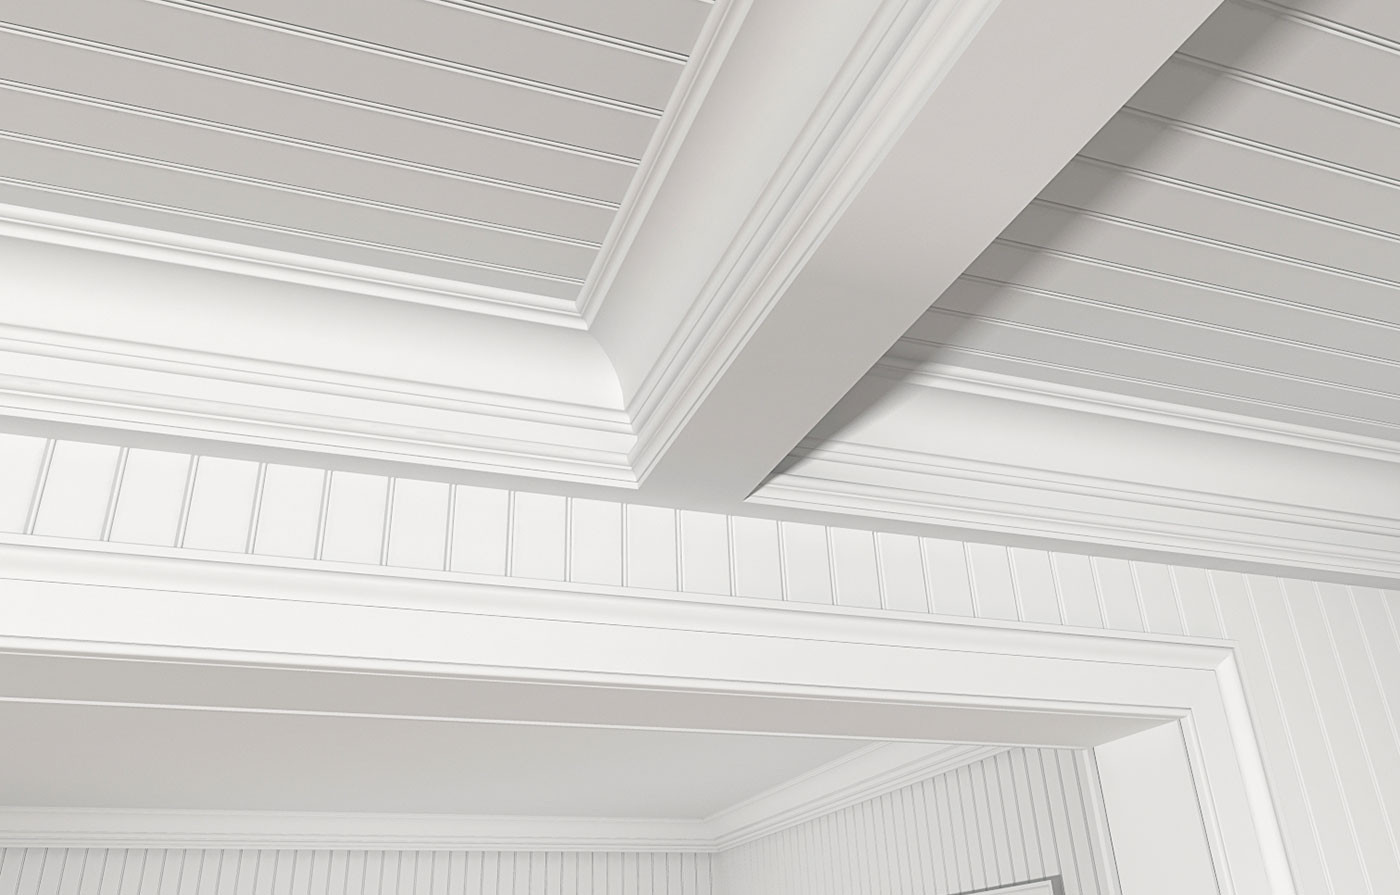 2-1/2 Inches On Center V-Bead, GSC512, 8577 (Coffered Ceiling), LK4 Casing